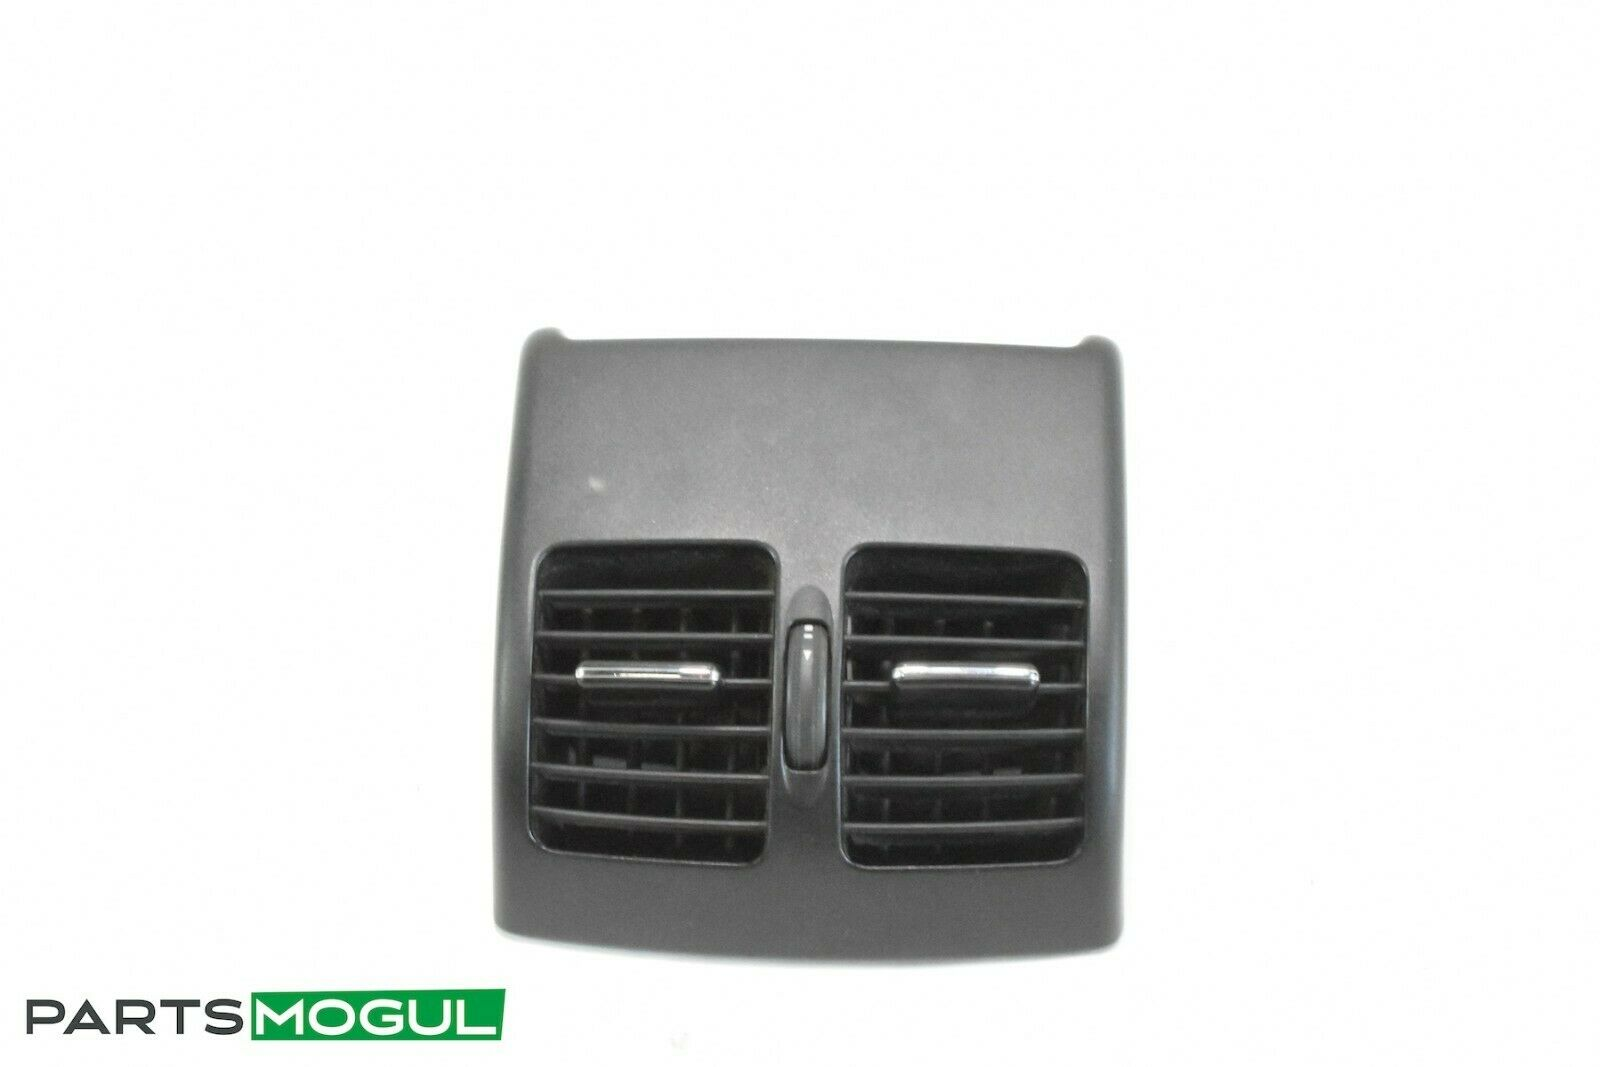 Small Round A//C Air Outlet Vent Dash Brown Grille Replacement for Mercedes Benz C Class W204 C200 C260